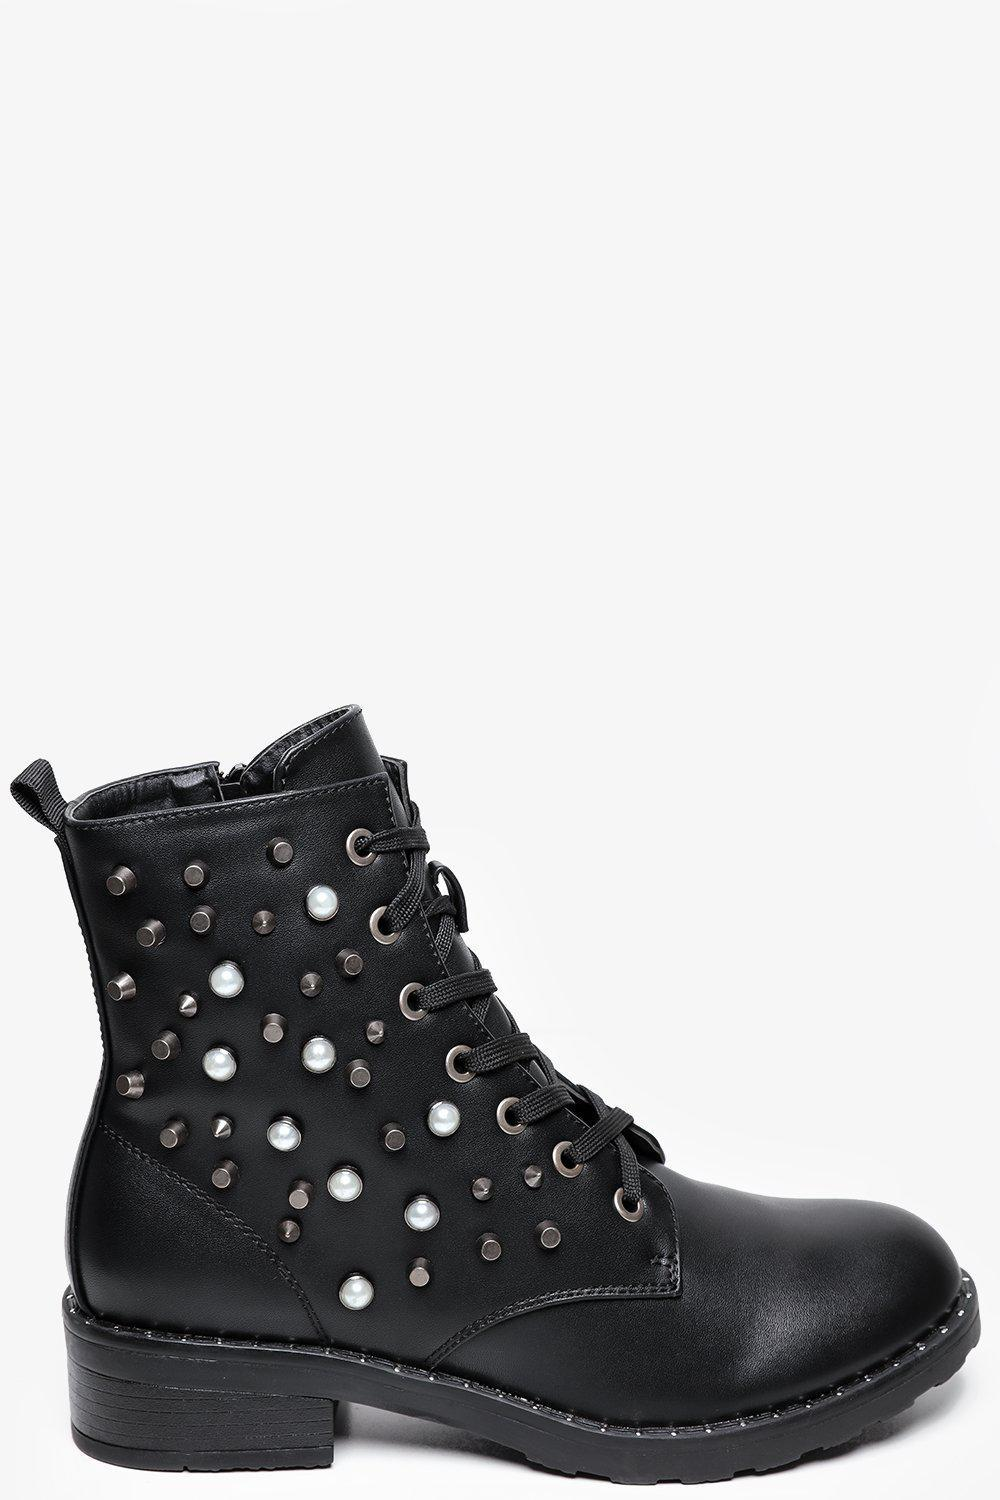 Studs And Pearls Embellished Biker Boots